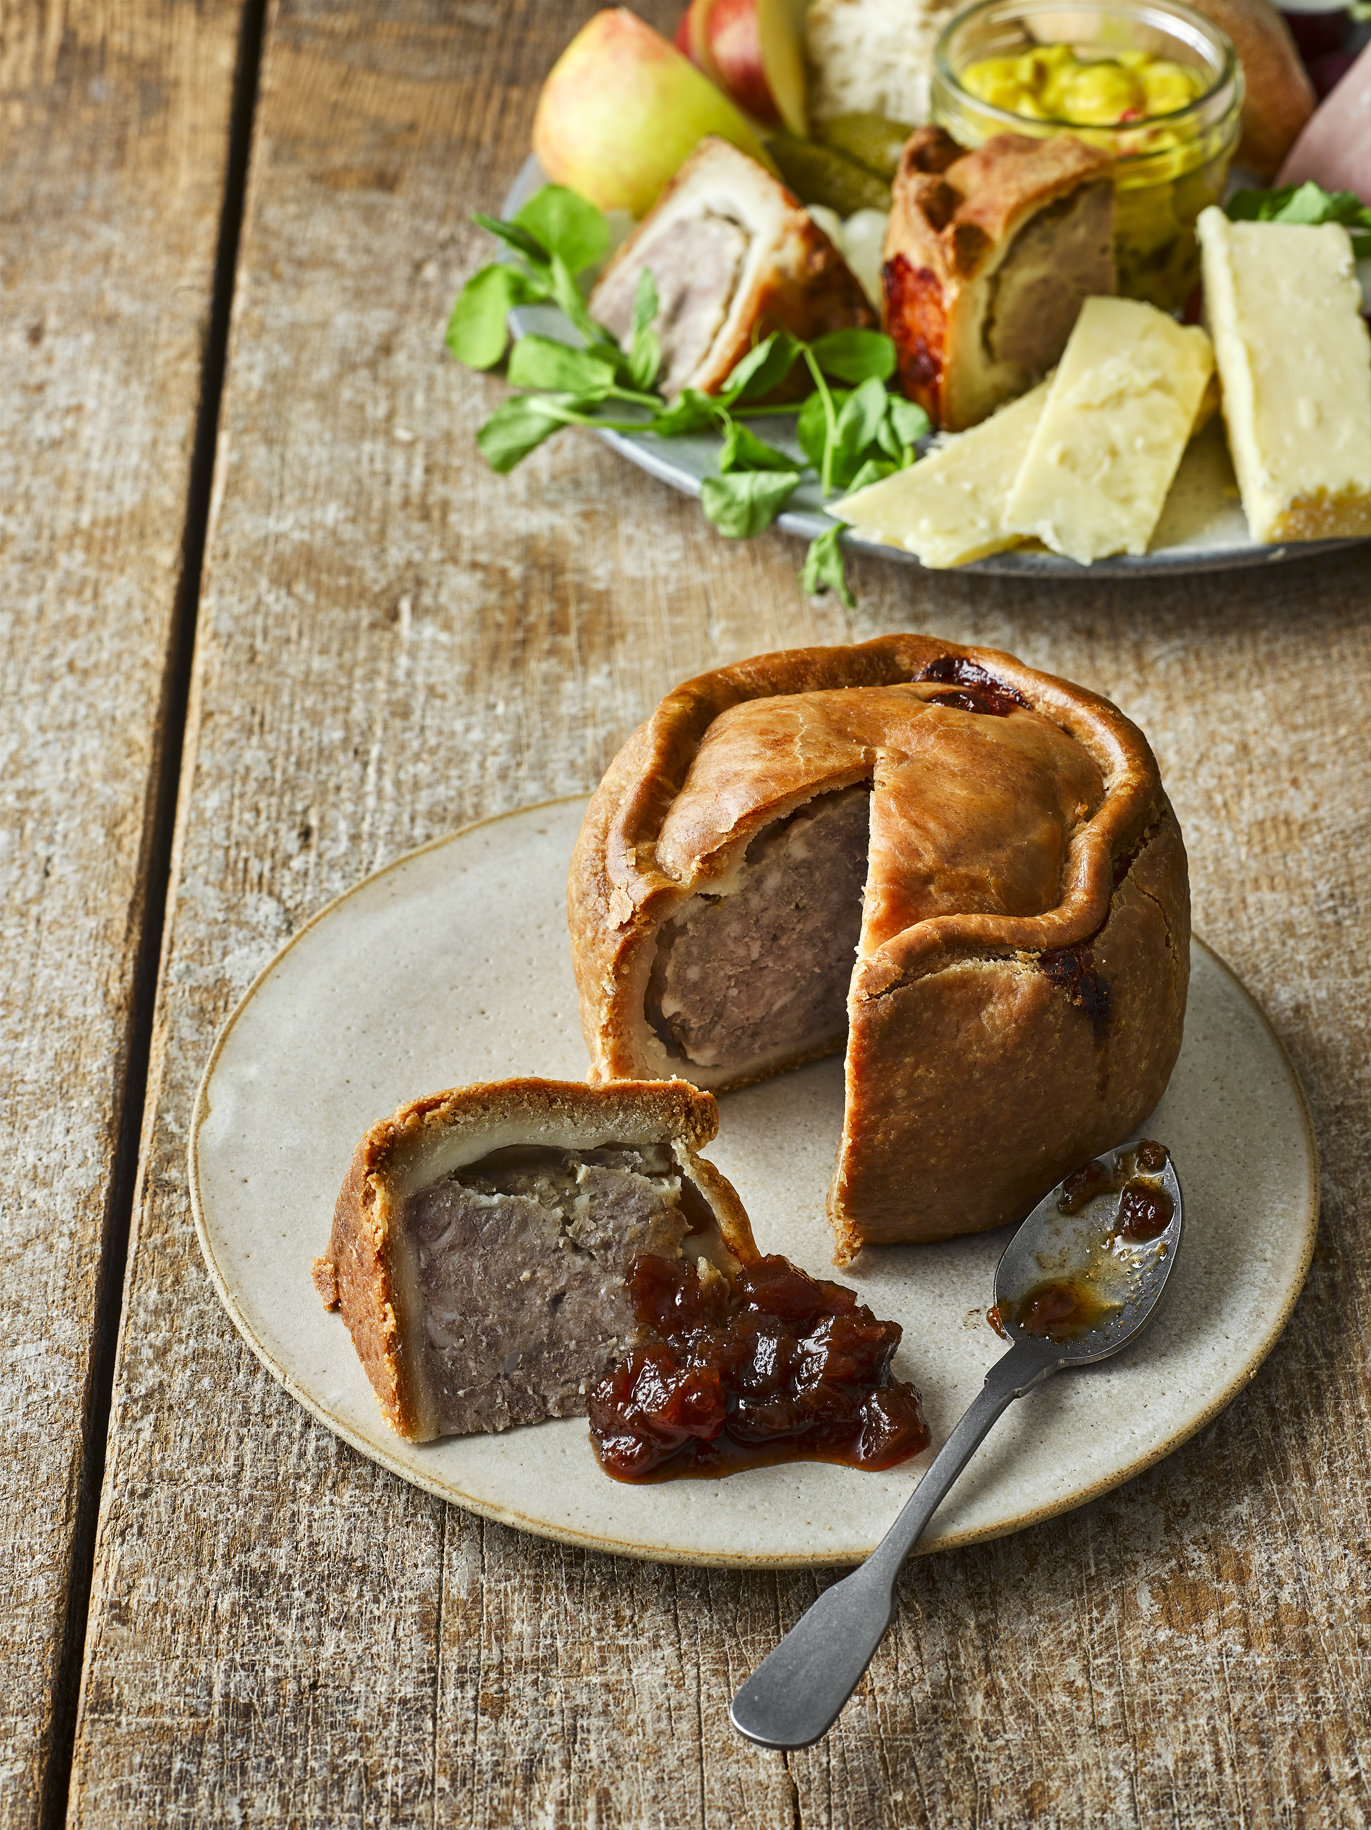 Pork Pie with Pickle and Chutney